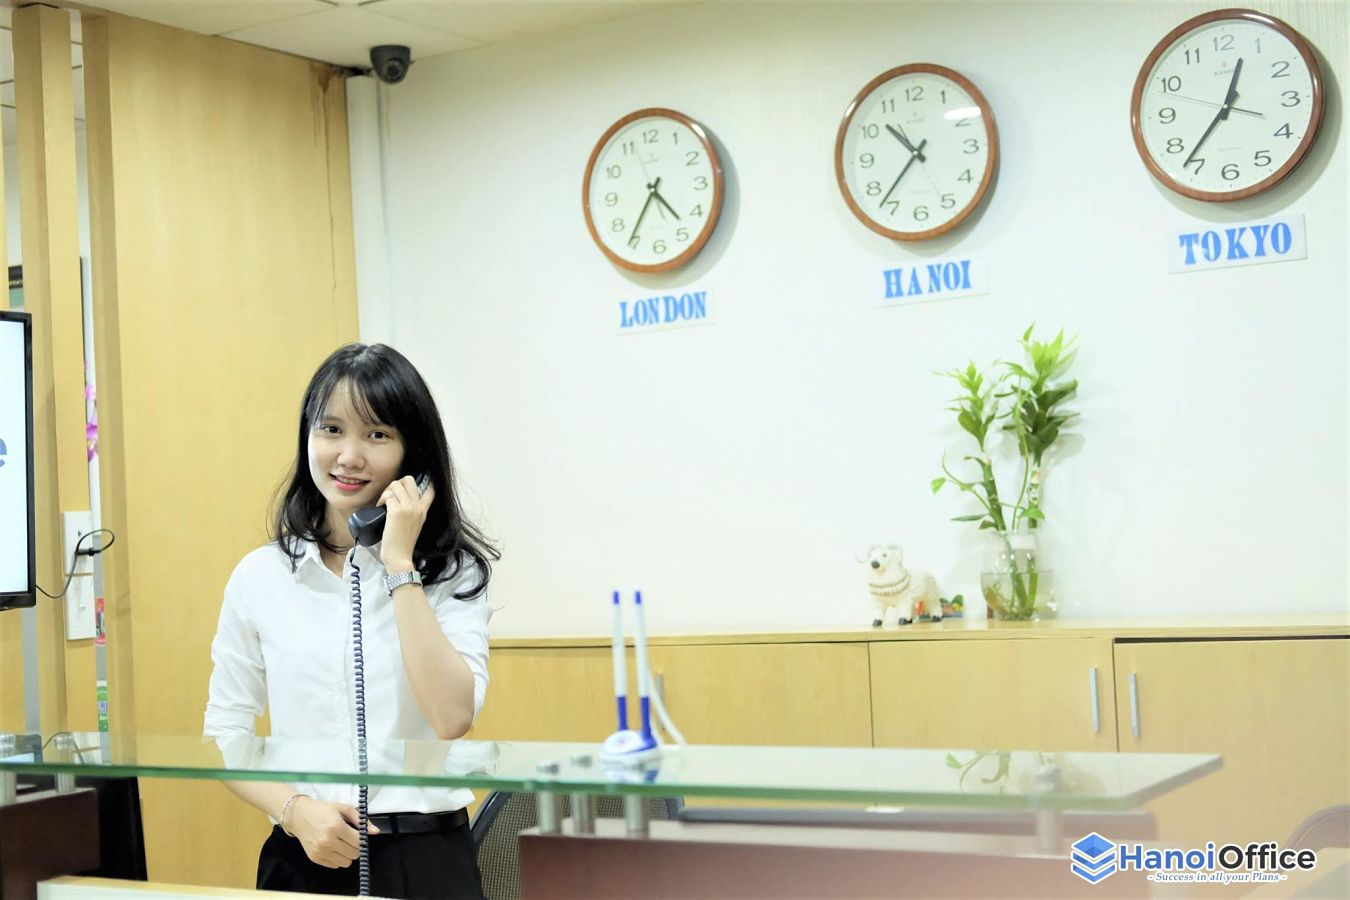 thanh-lap-chi-nhanh-cong-ty-nuoc-ngoai-6